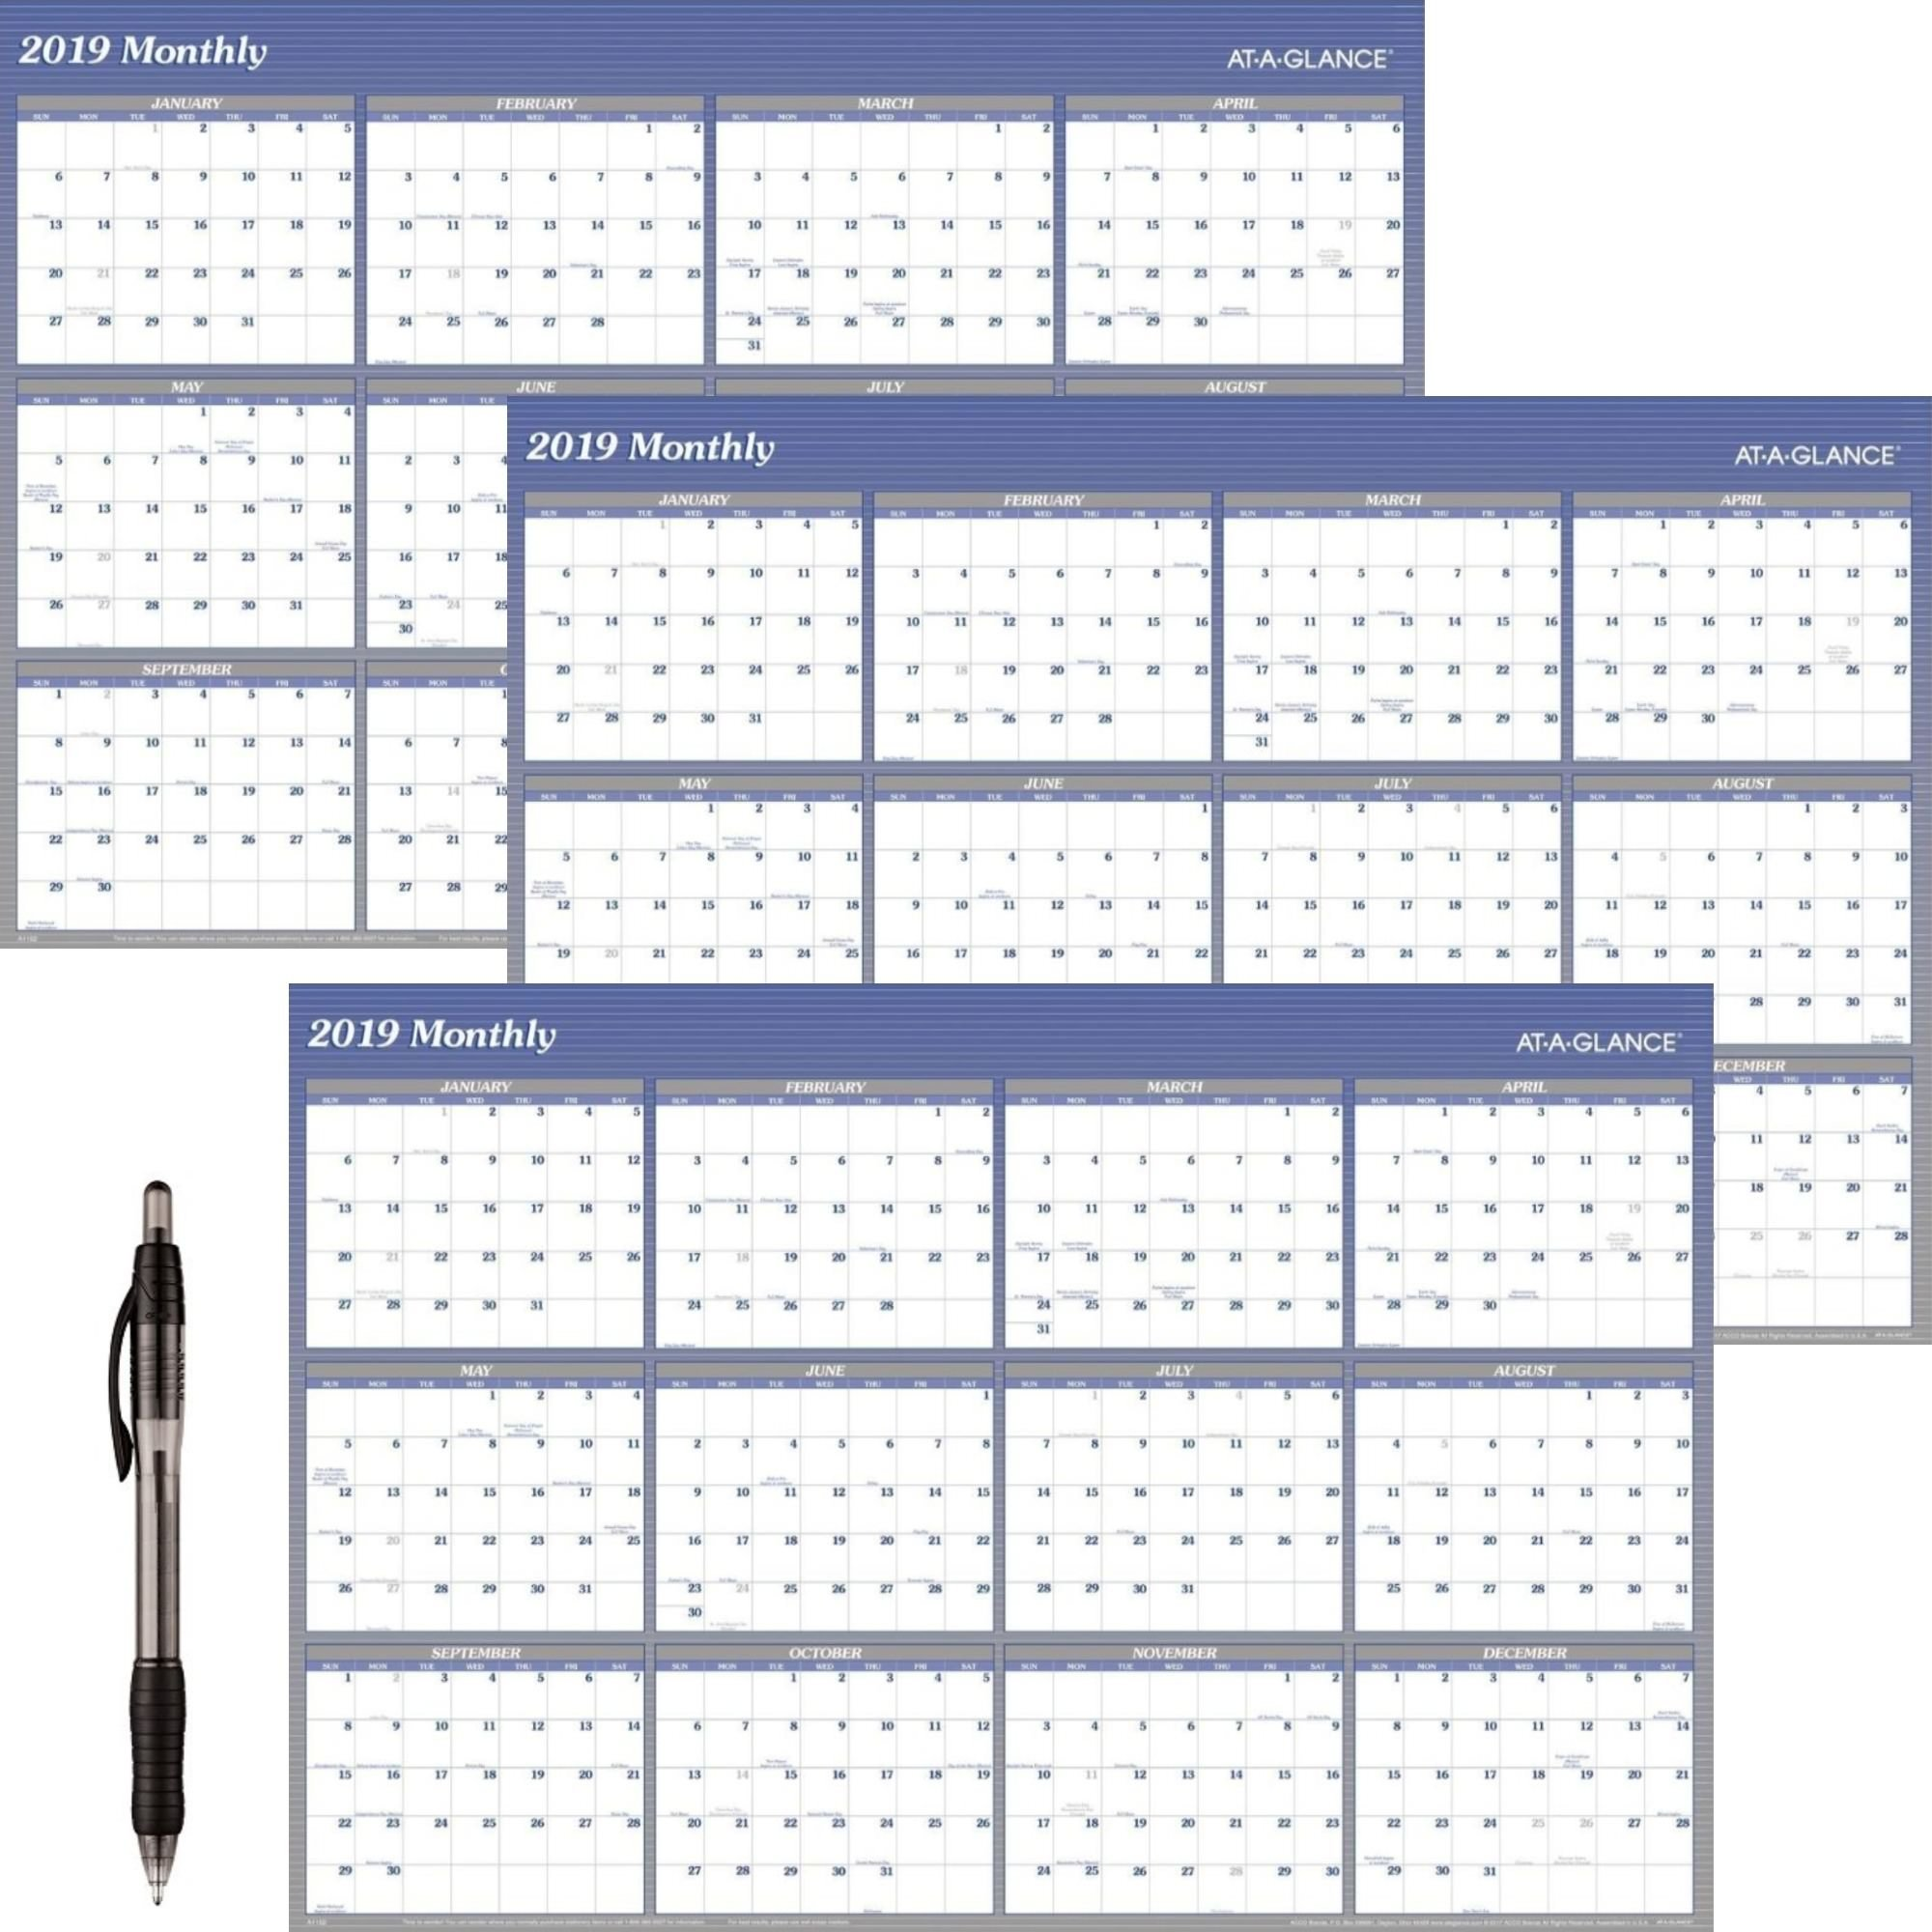 AT-A-GLANCE A1152-18 Yearly Wall Planner, January 2019 - December 2019, 48'' x 32'', Vertical, Horizontal, Erasable, Reversible, Blue (A1152) 3 Pack - Bundle Includes Black Ballpoint Pen